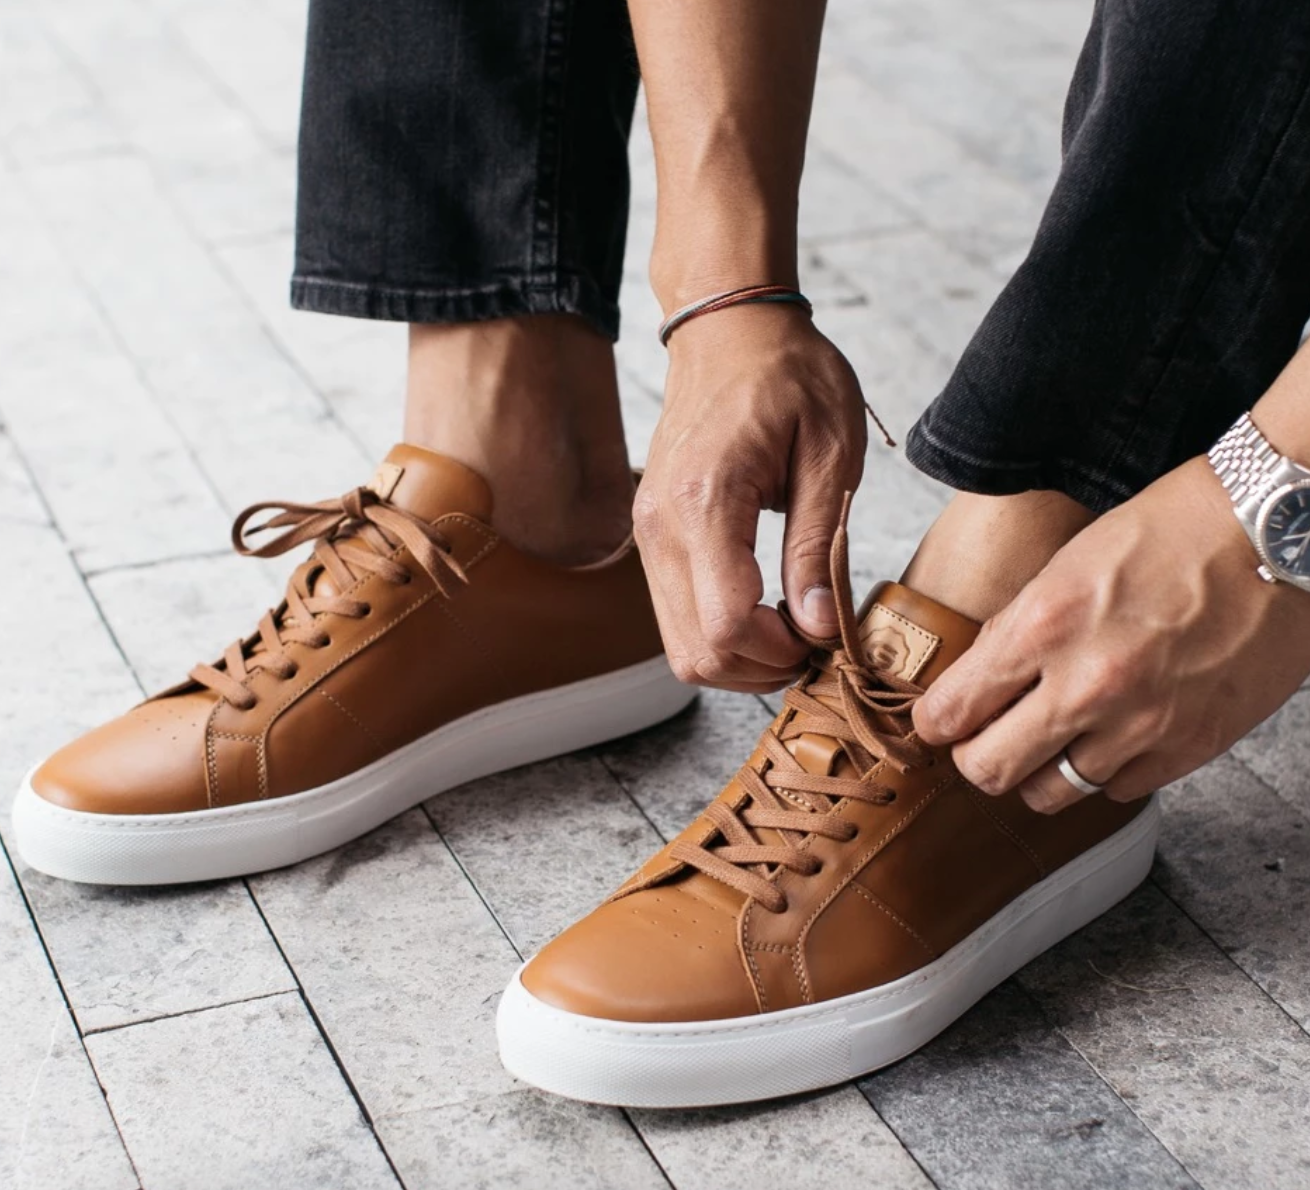 Model tying a pair of tan leather Greats